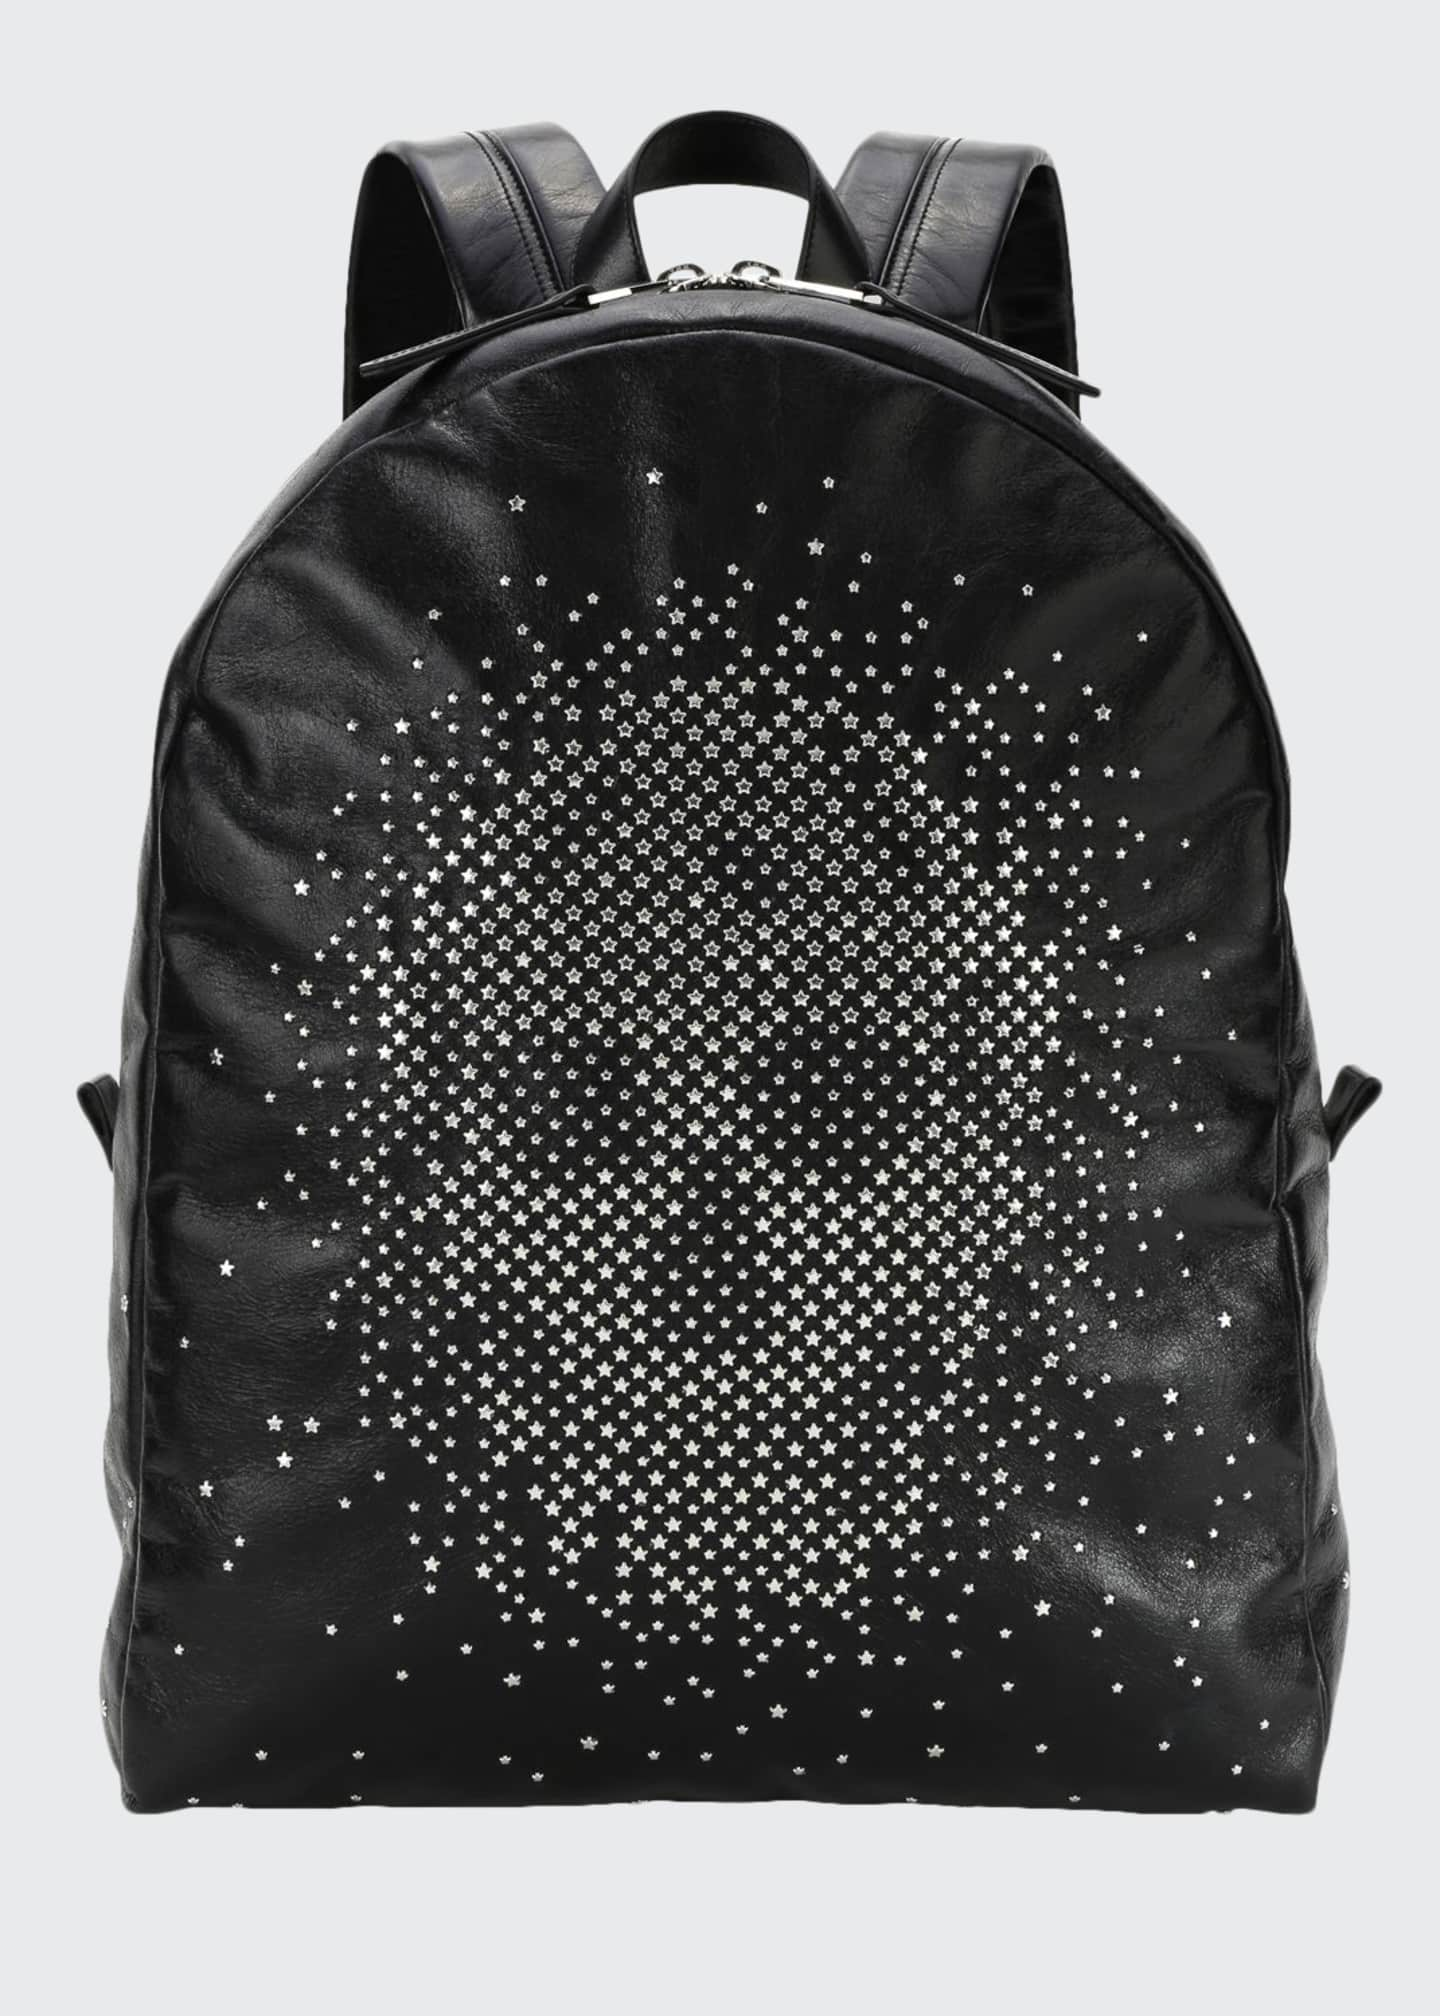 Alexander McQueen Men's Skull-Studded Leather Backpack